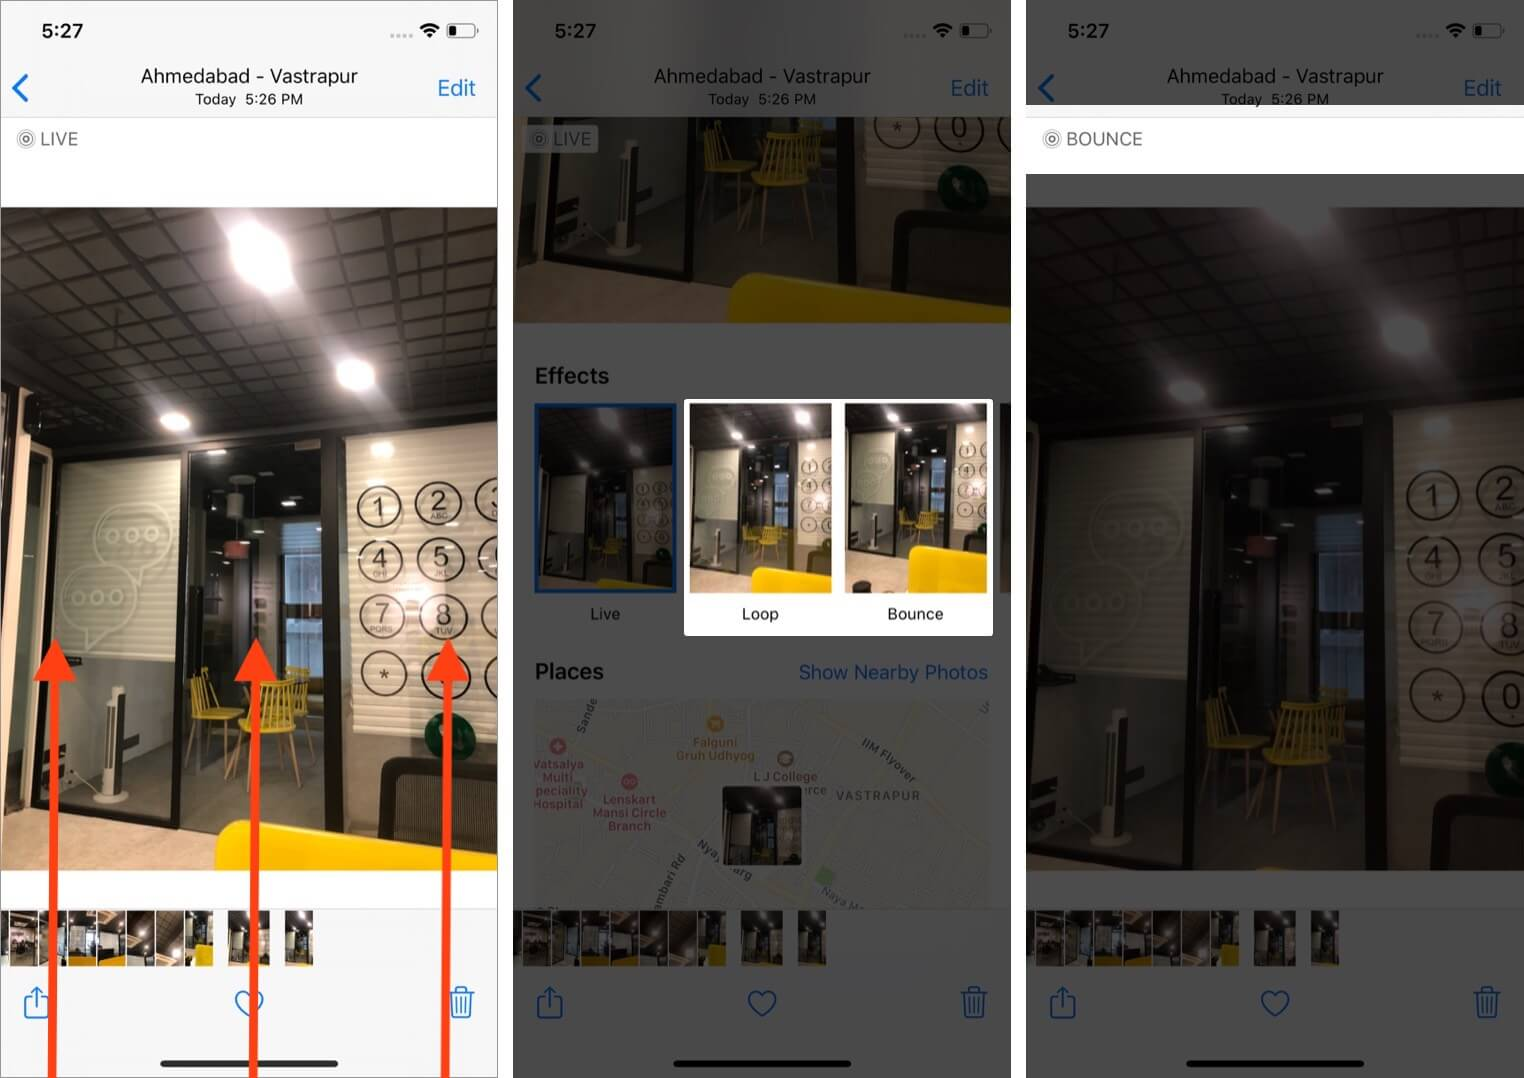 swipe up photo and select effect to turn live photo into gif using photos app on iphone